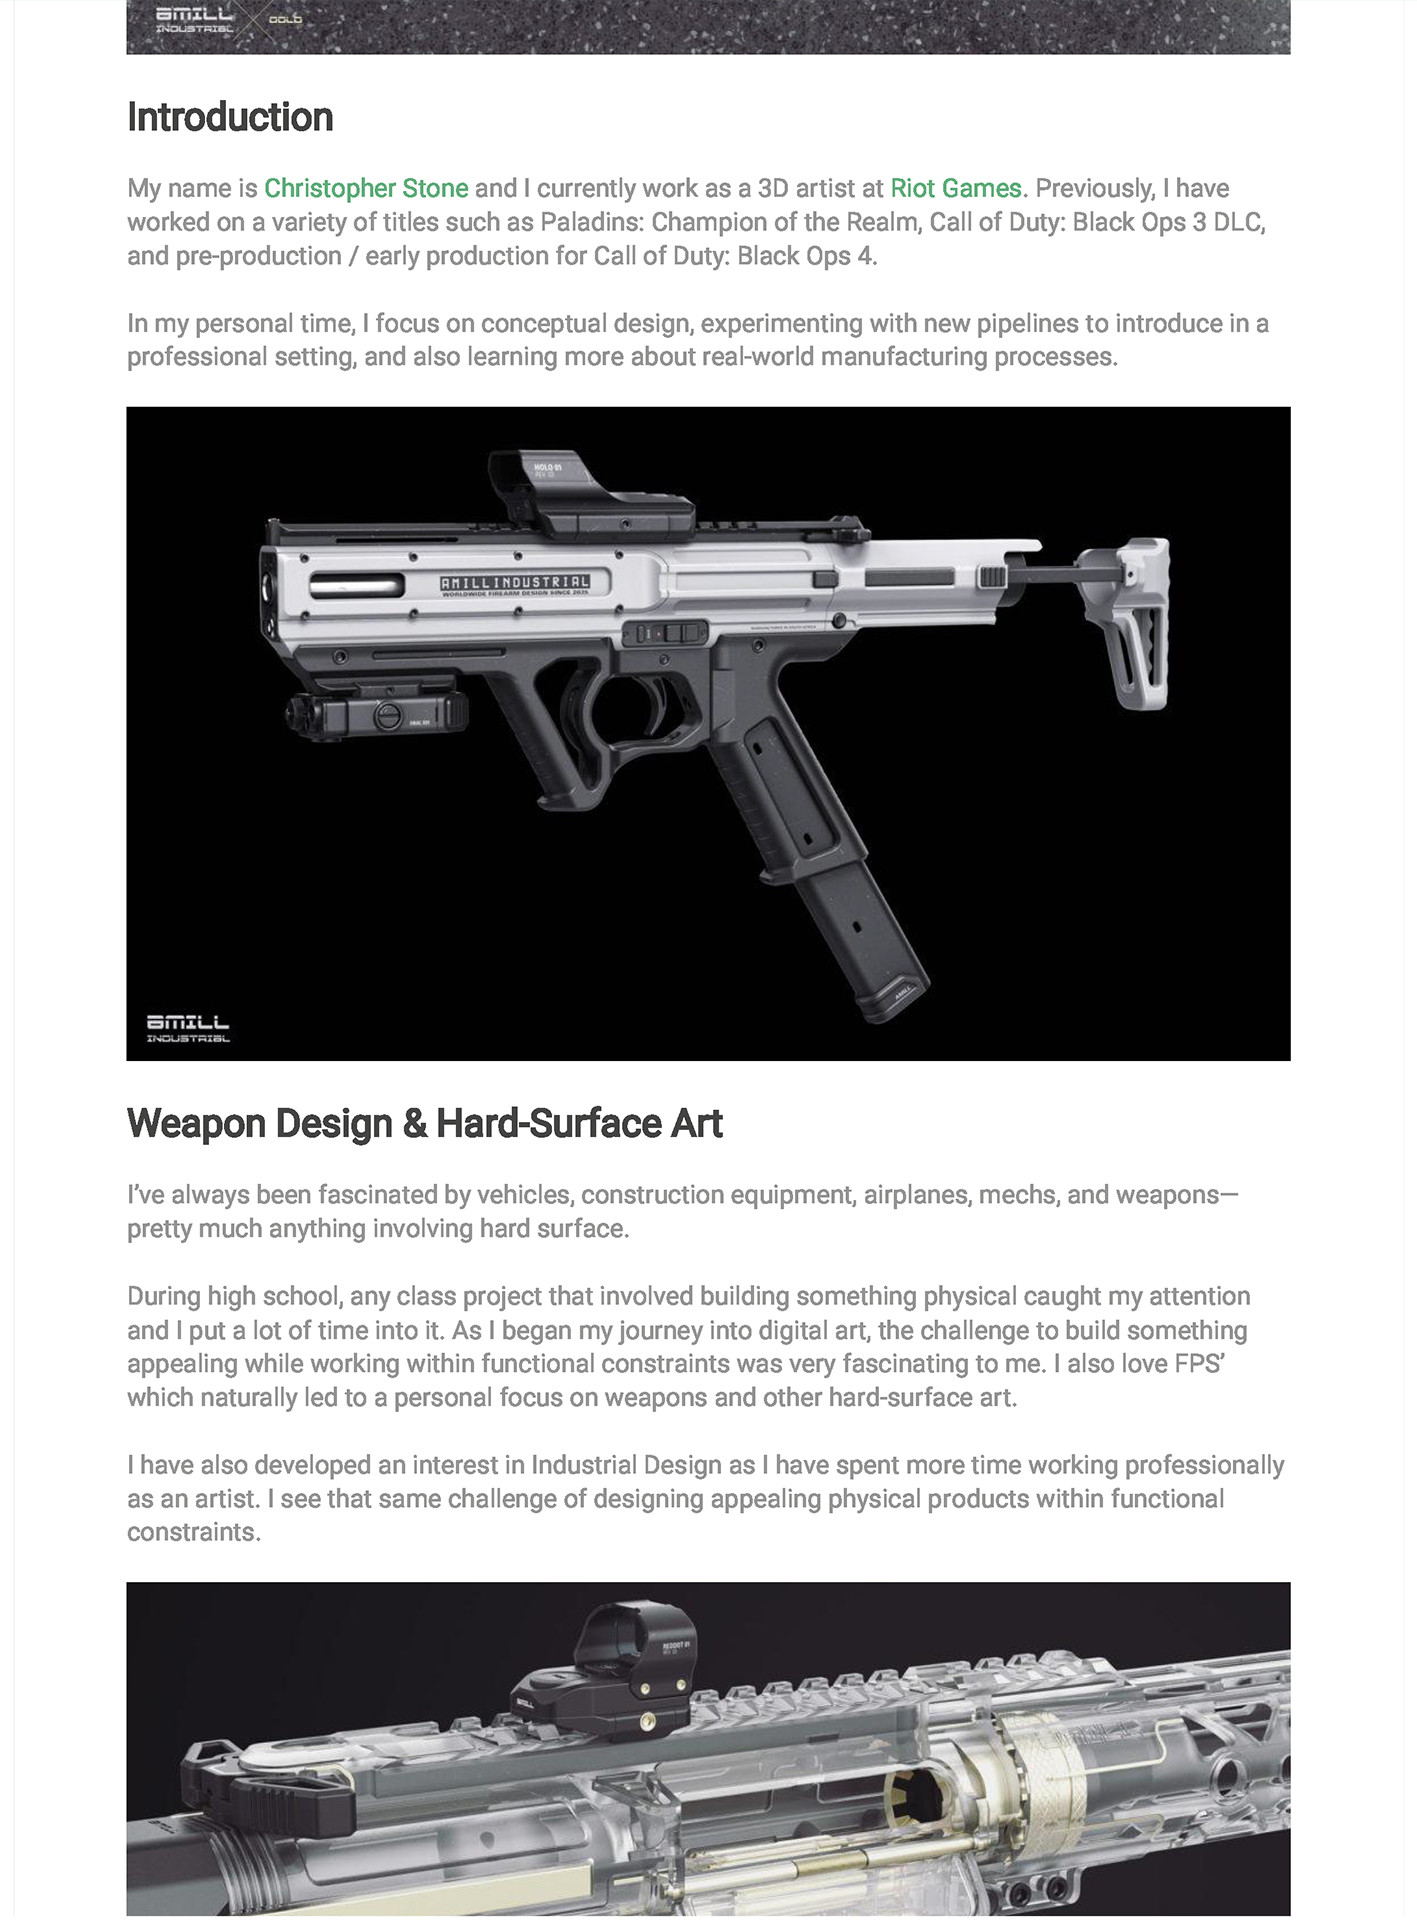 Chris stone experimenting with weapon design page 02